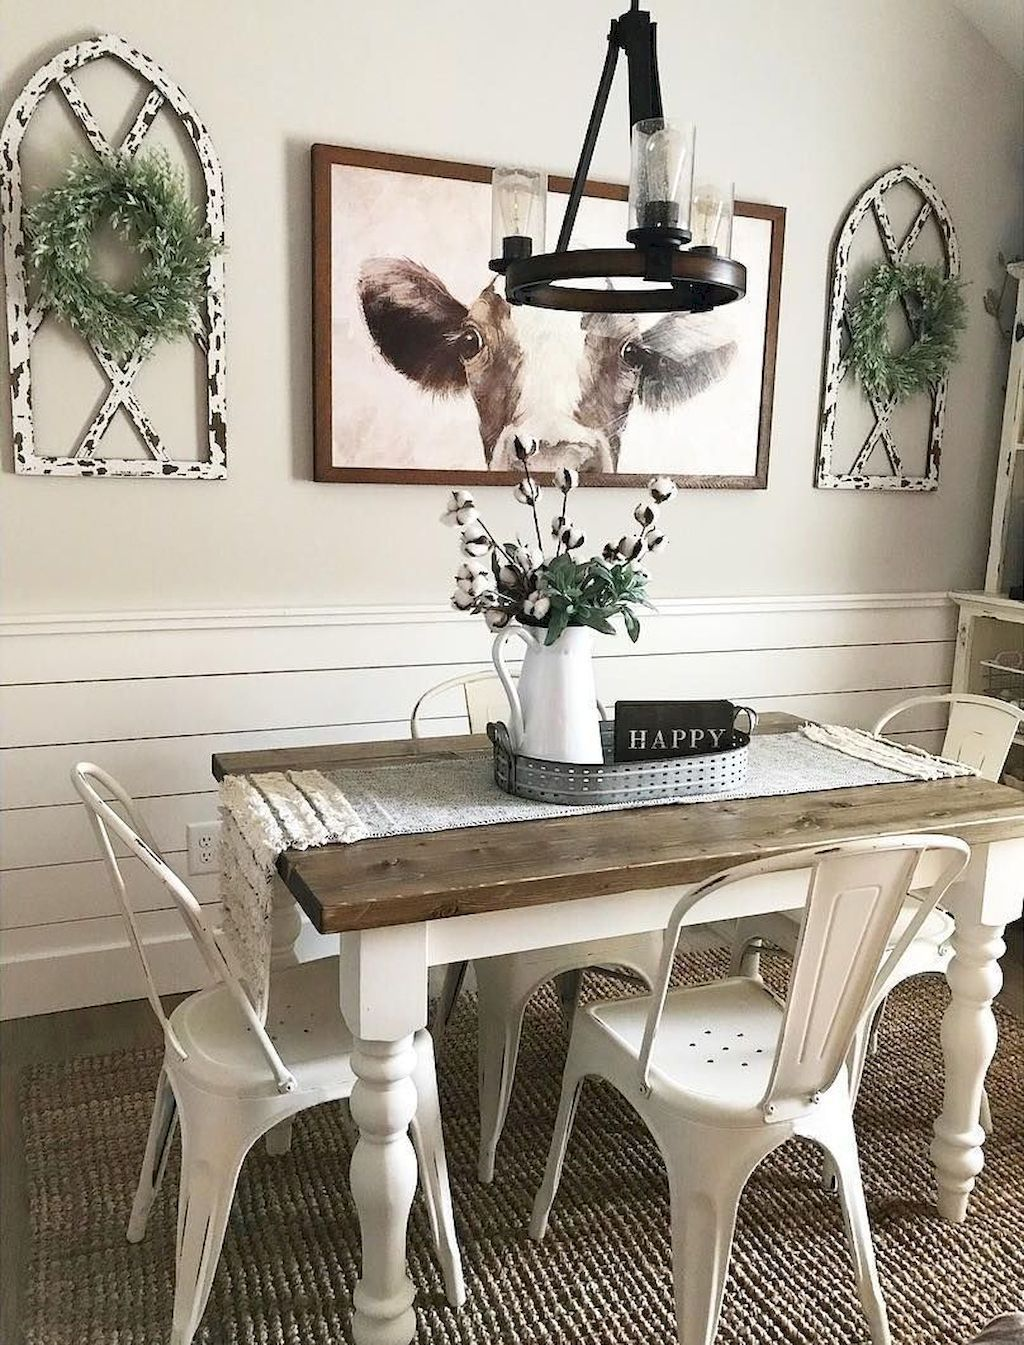 The Best Ideas To Decorate Interior Design With Farmhouse Style 38